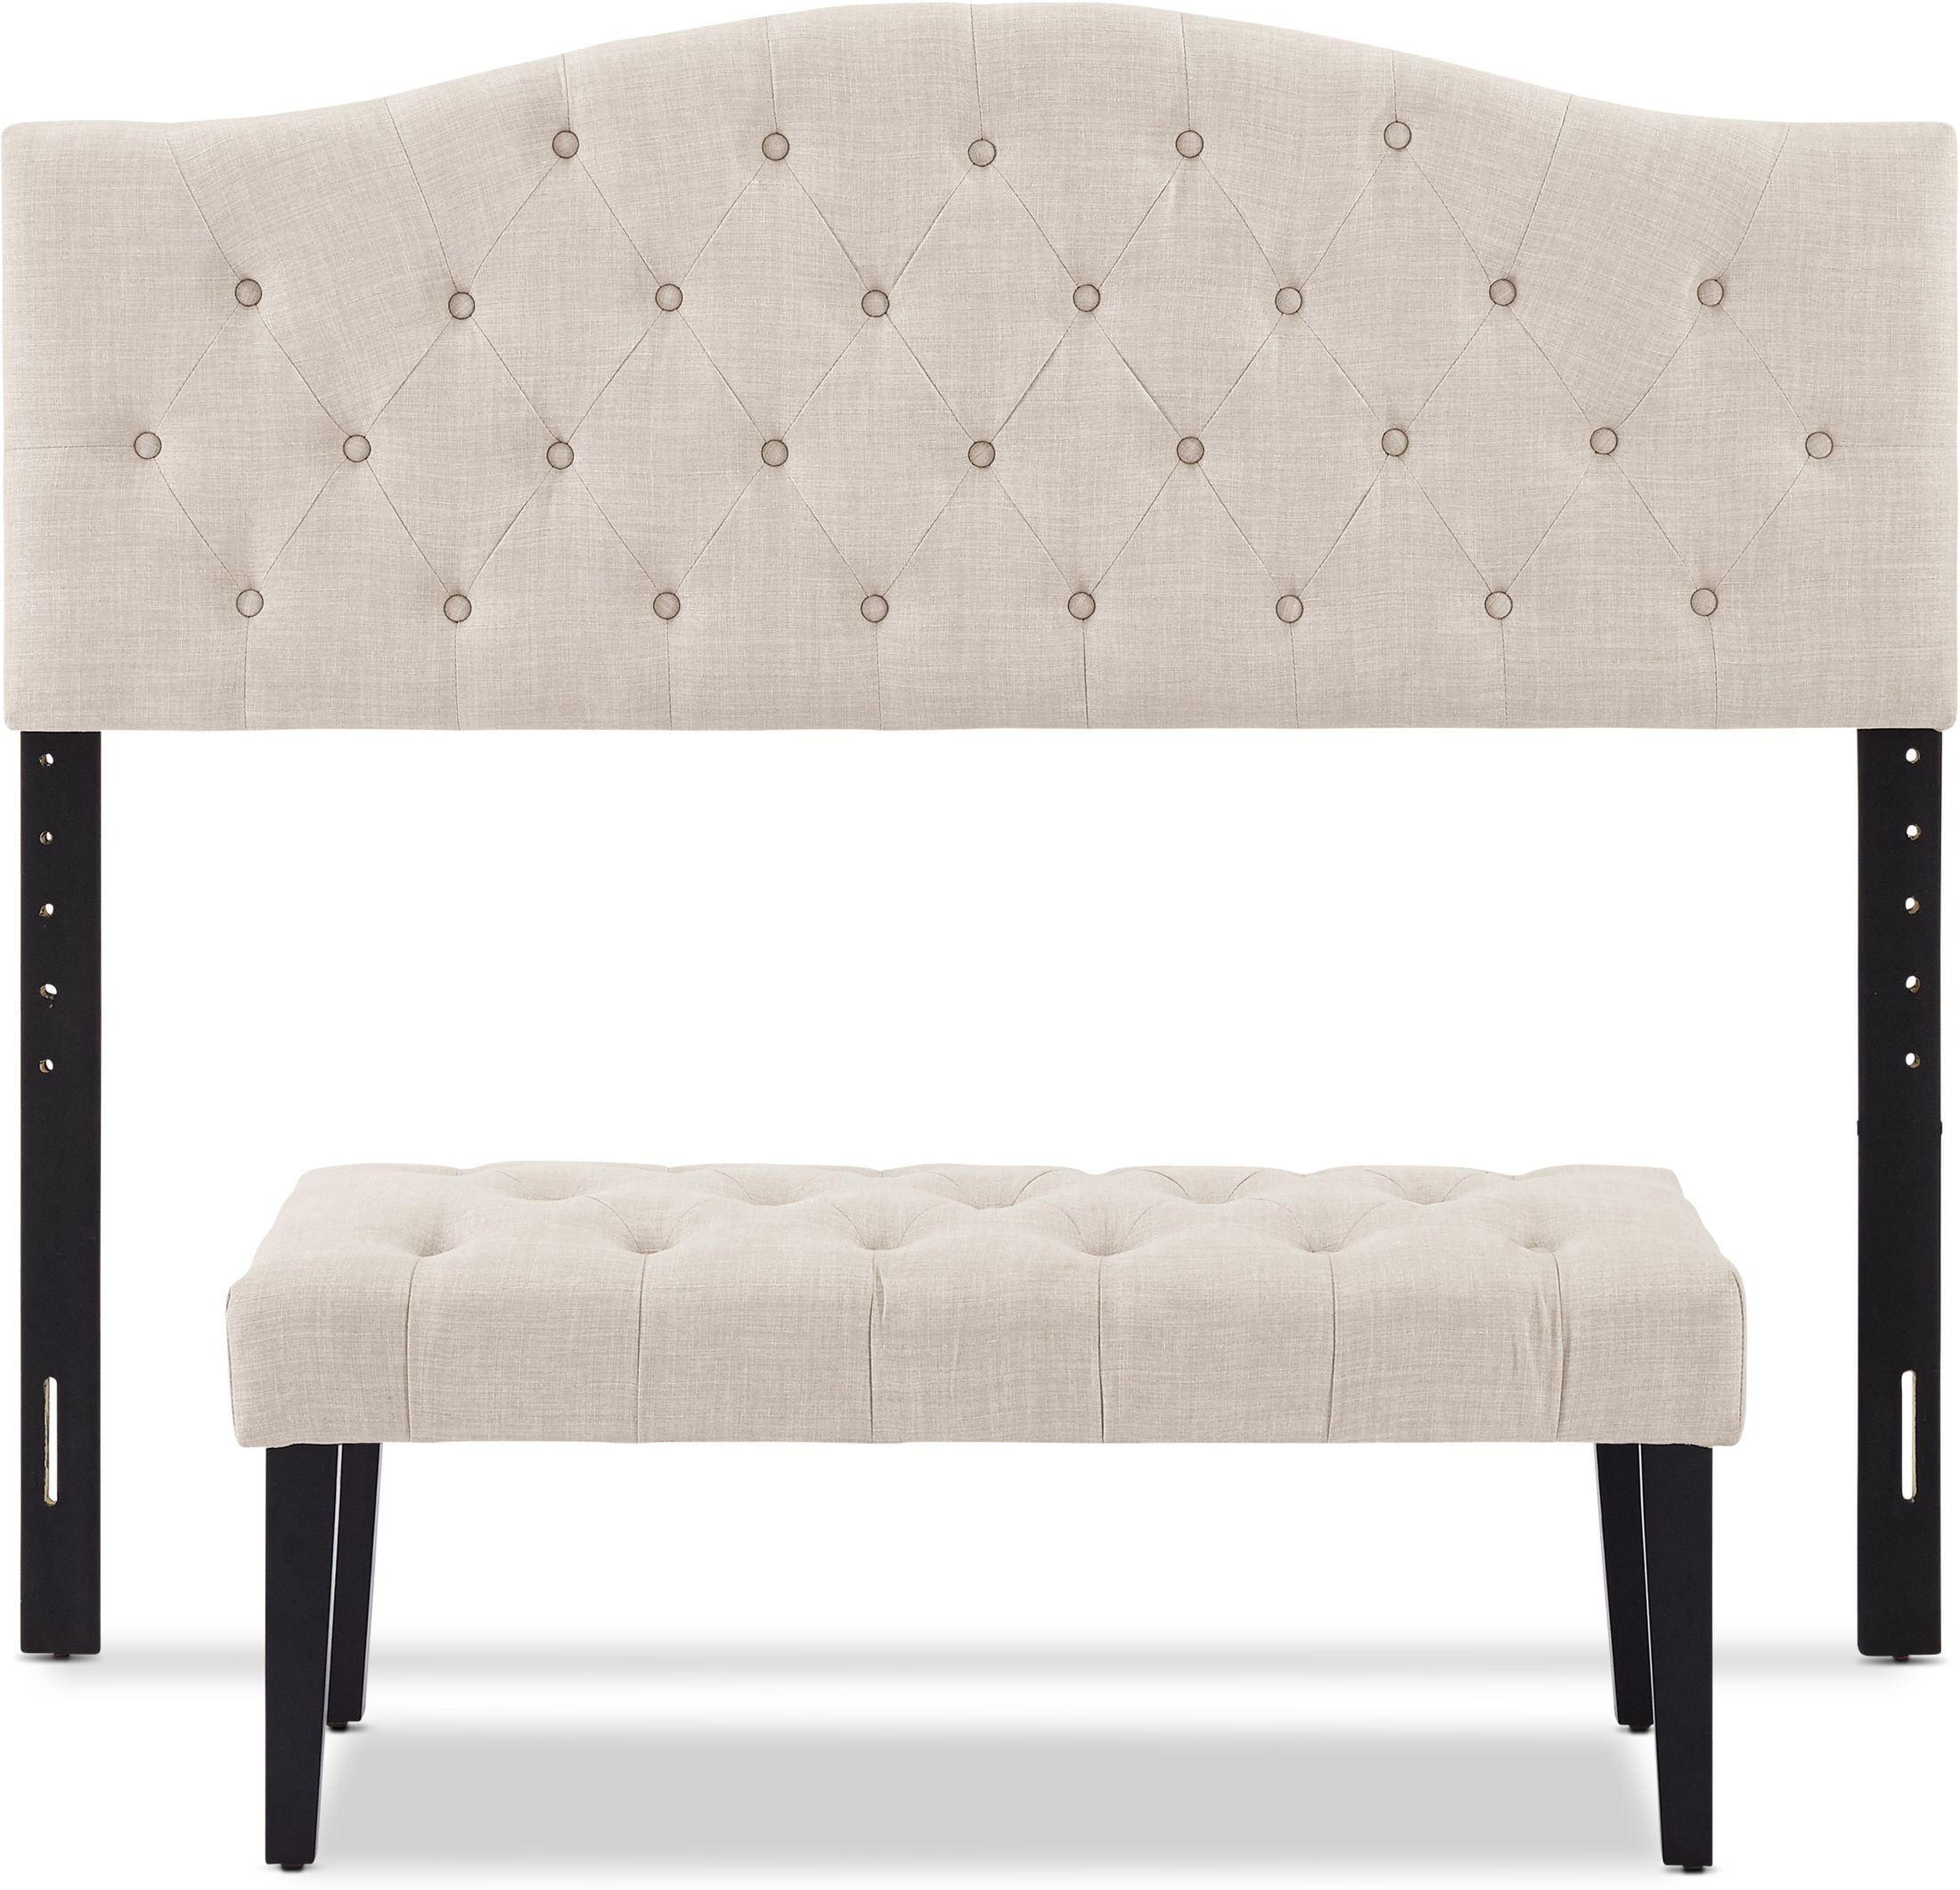 Bedroom Furniture - Cecilia Queen Upholstered Headboard and Bench Set